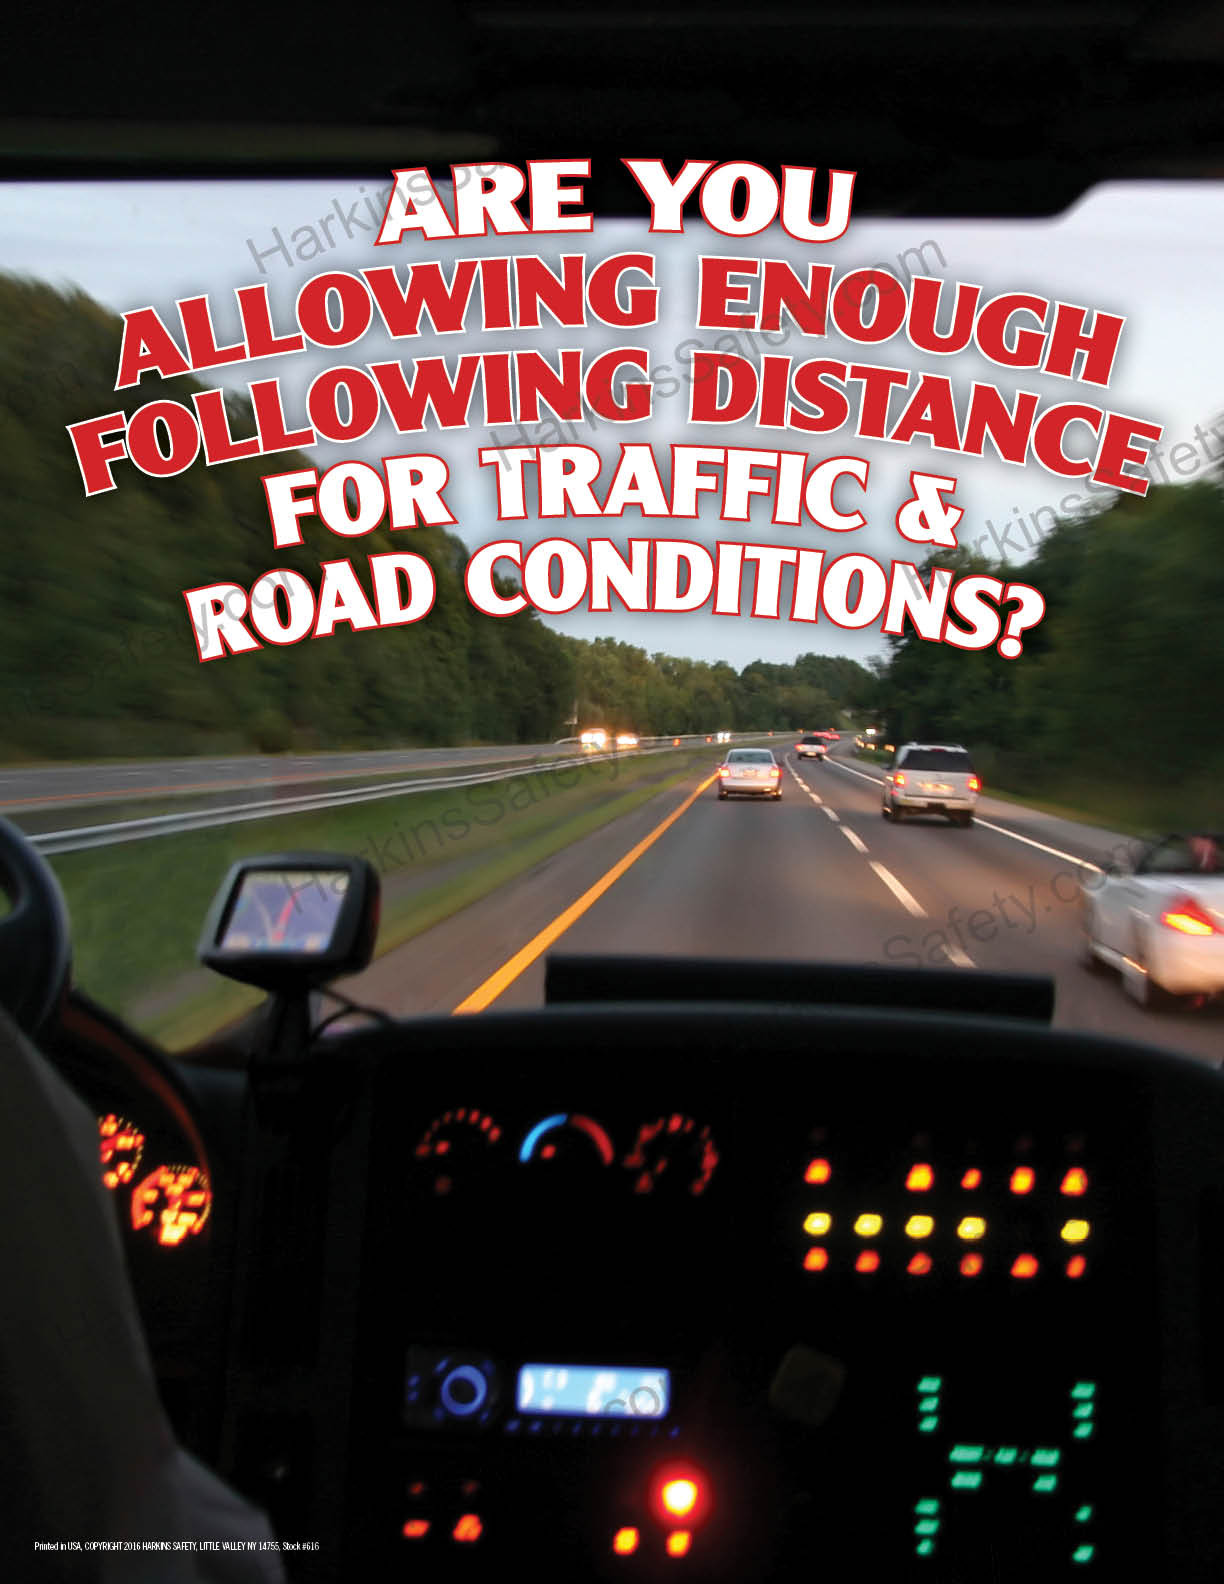 Are You Allowing Enough Following Distance....? (Poster)